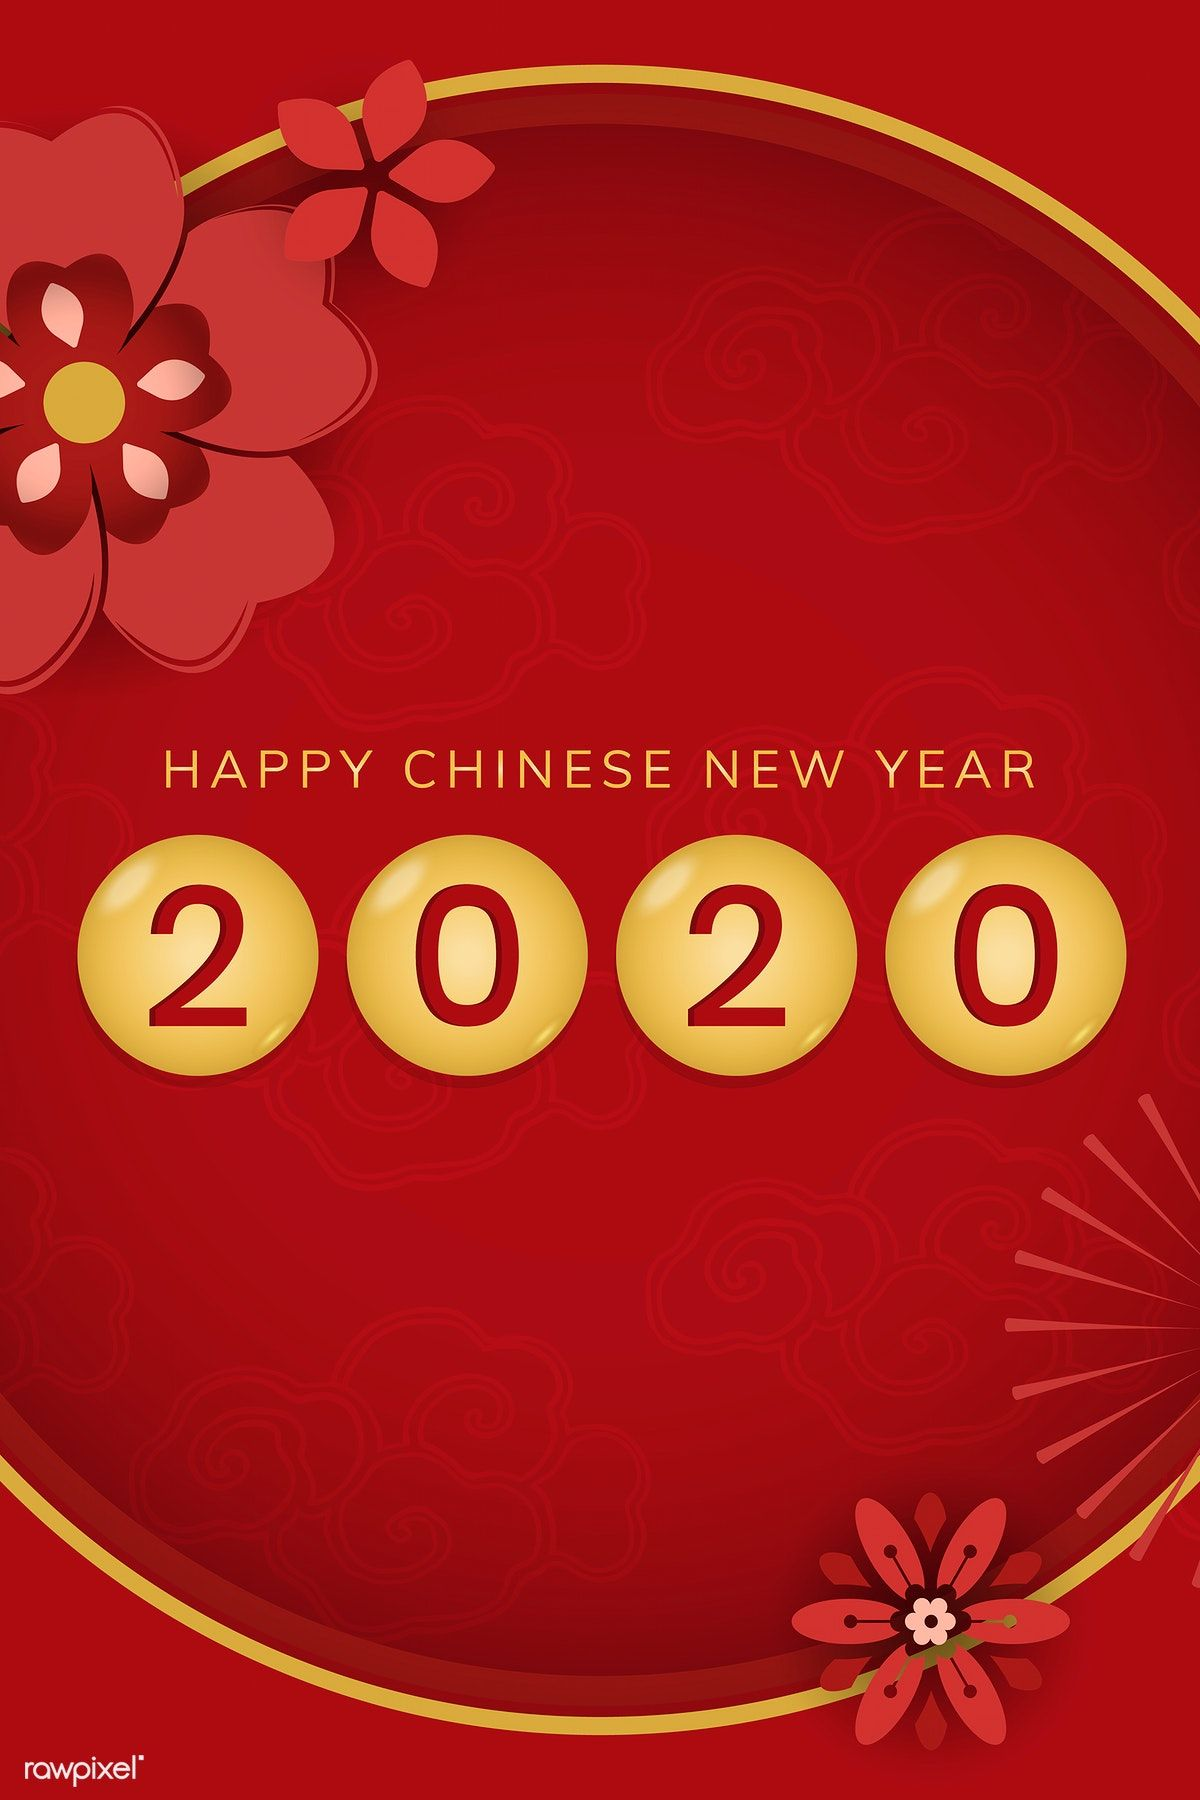 Download premium vector of Happy Chinese New Year 2020